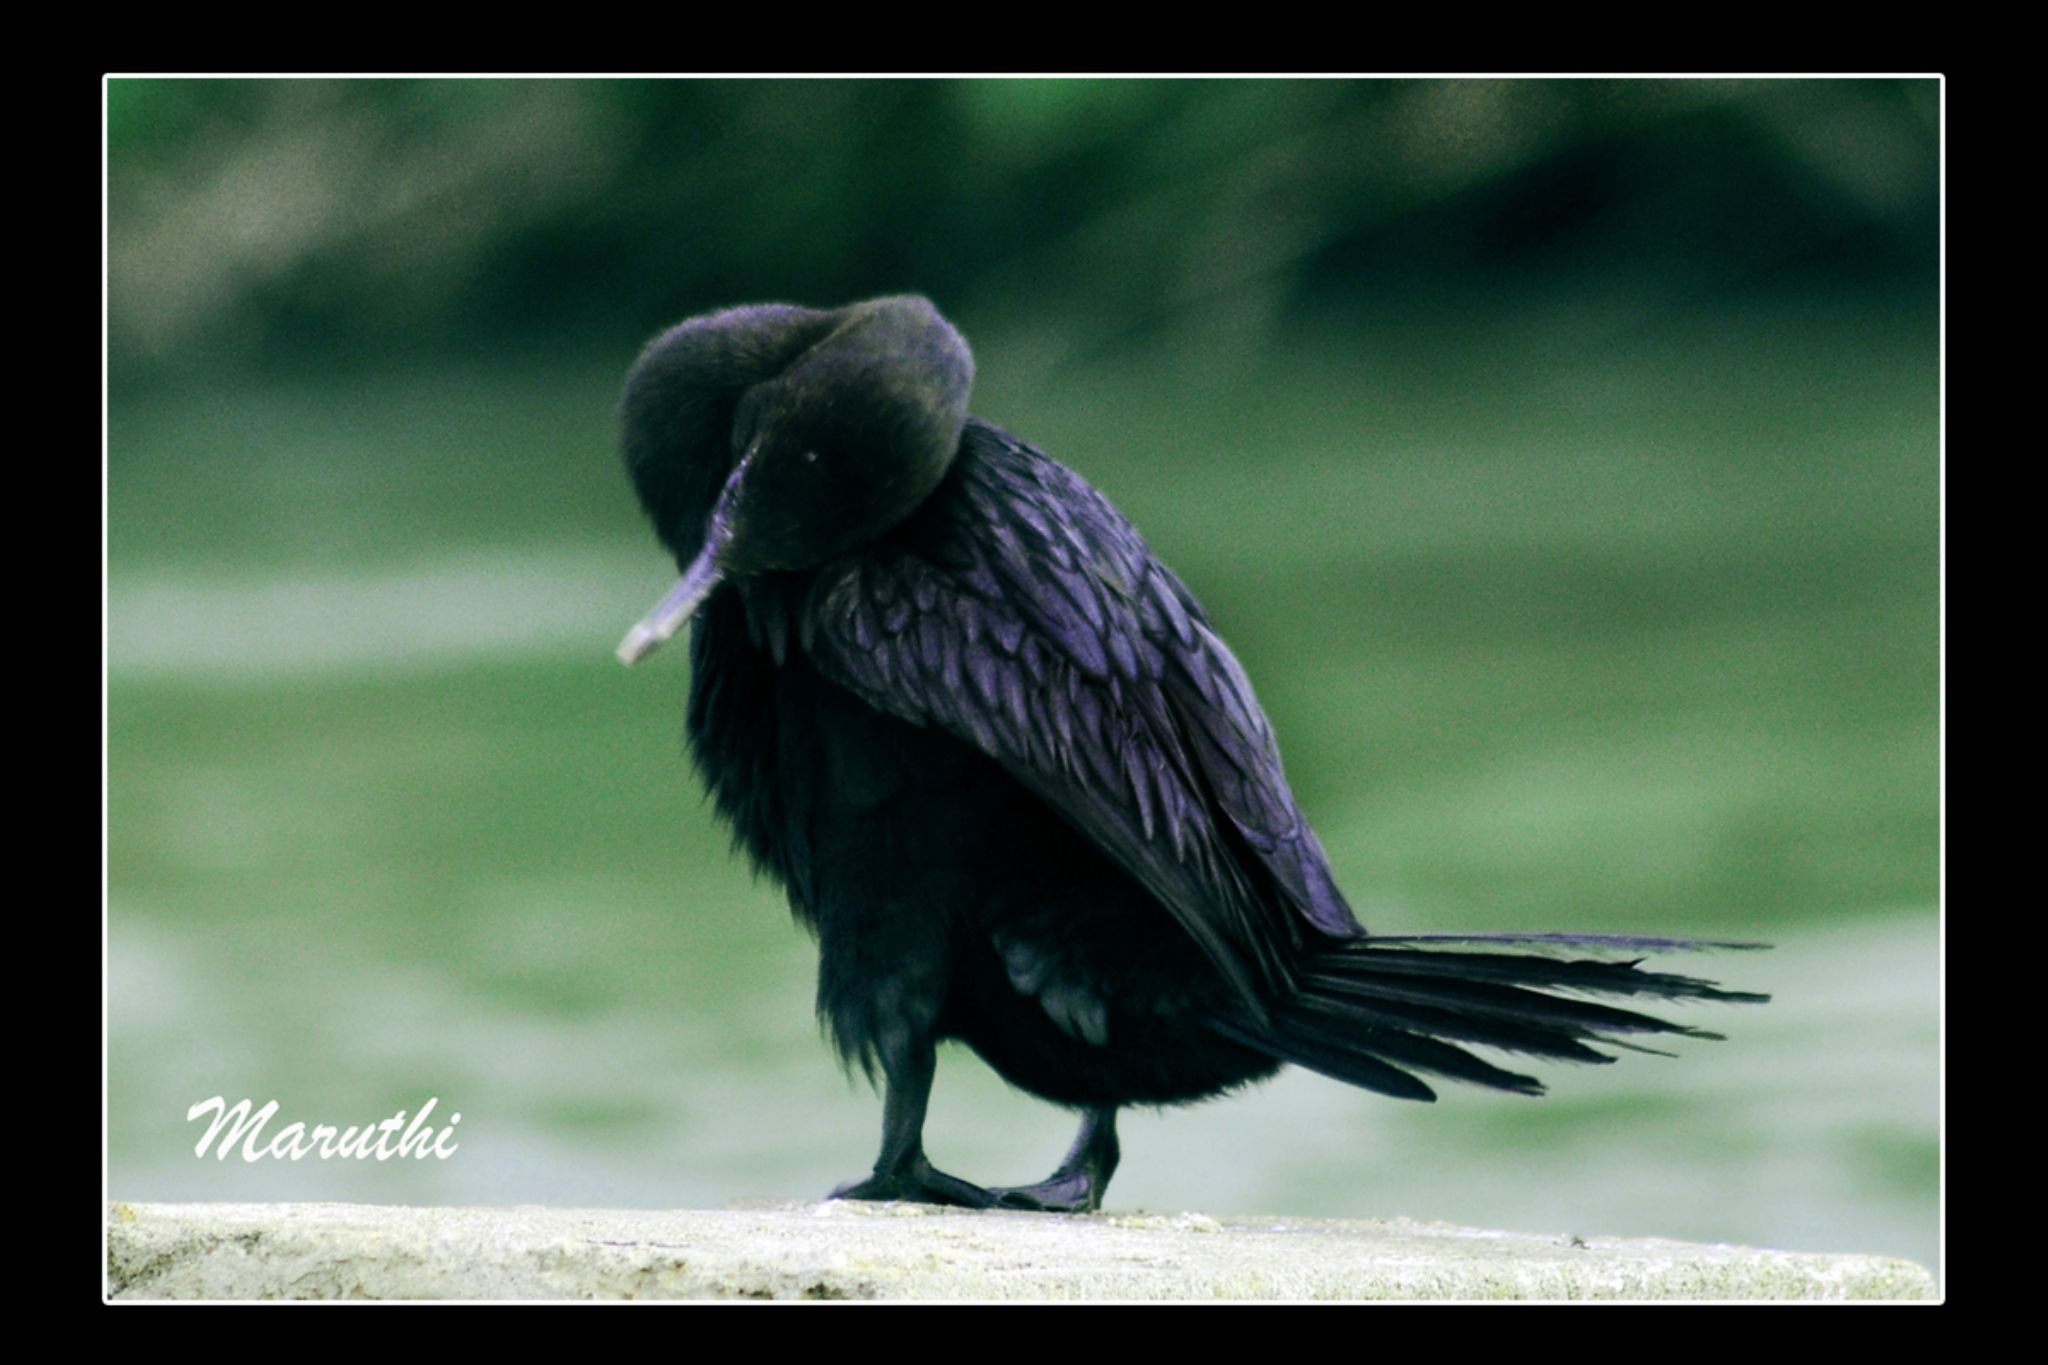 Little cormorant by Maruthi Pujari